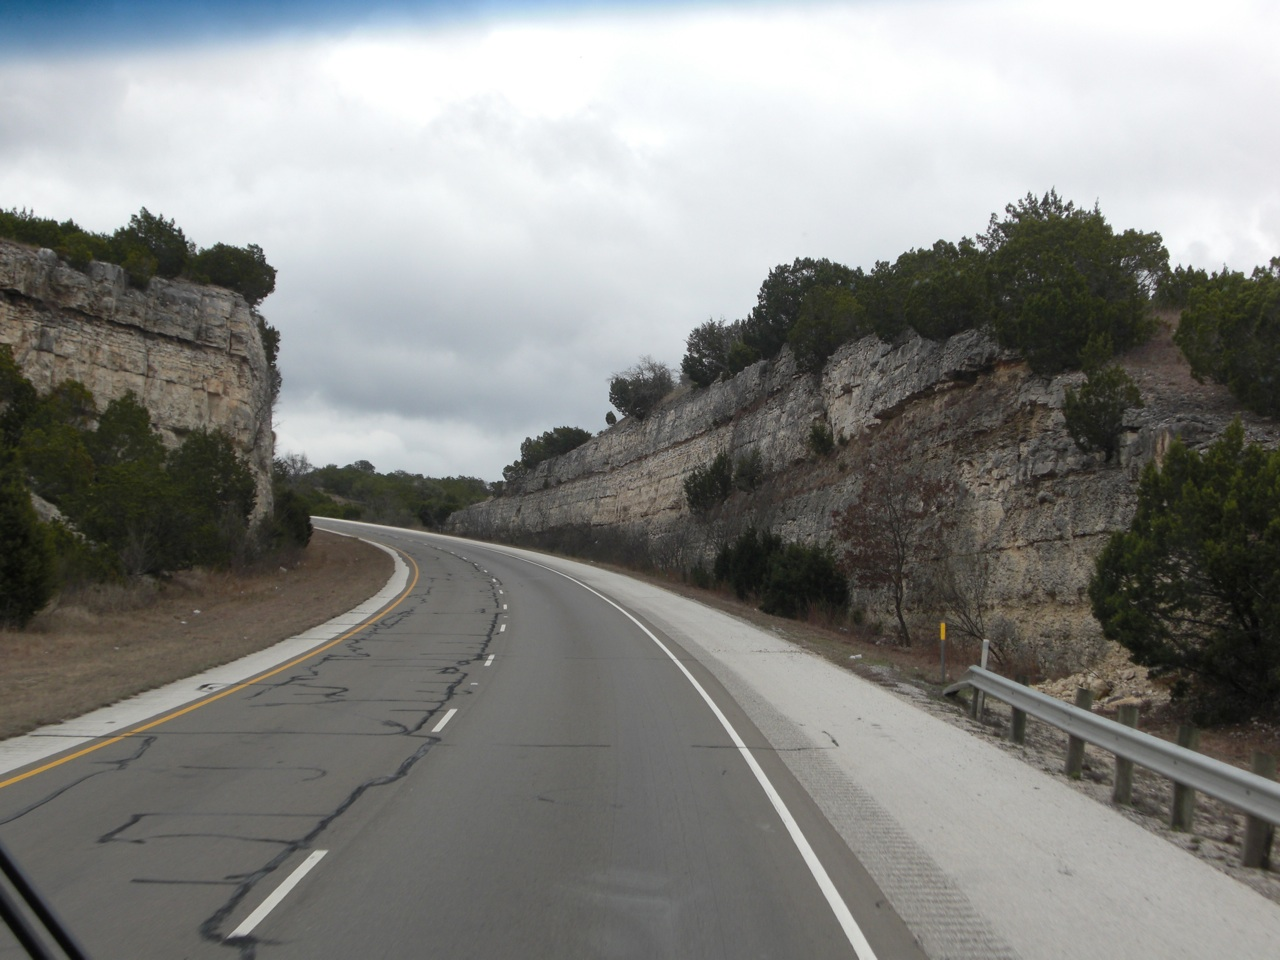 Driving Towards Bandera, TX. Interesting How The Mountain Is Split Right Down The Middle To Make Way For The Road.